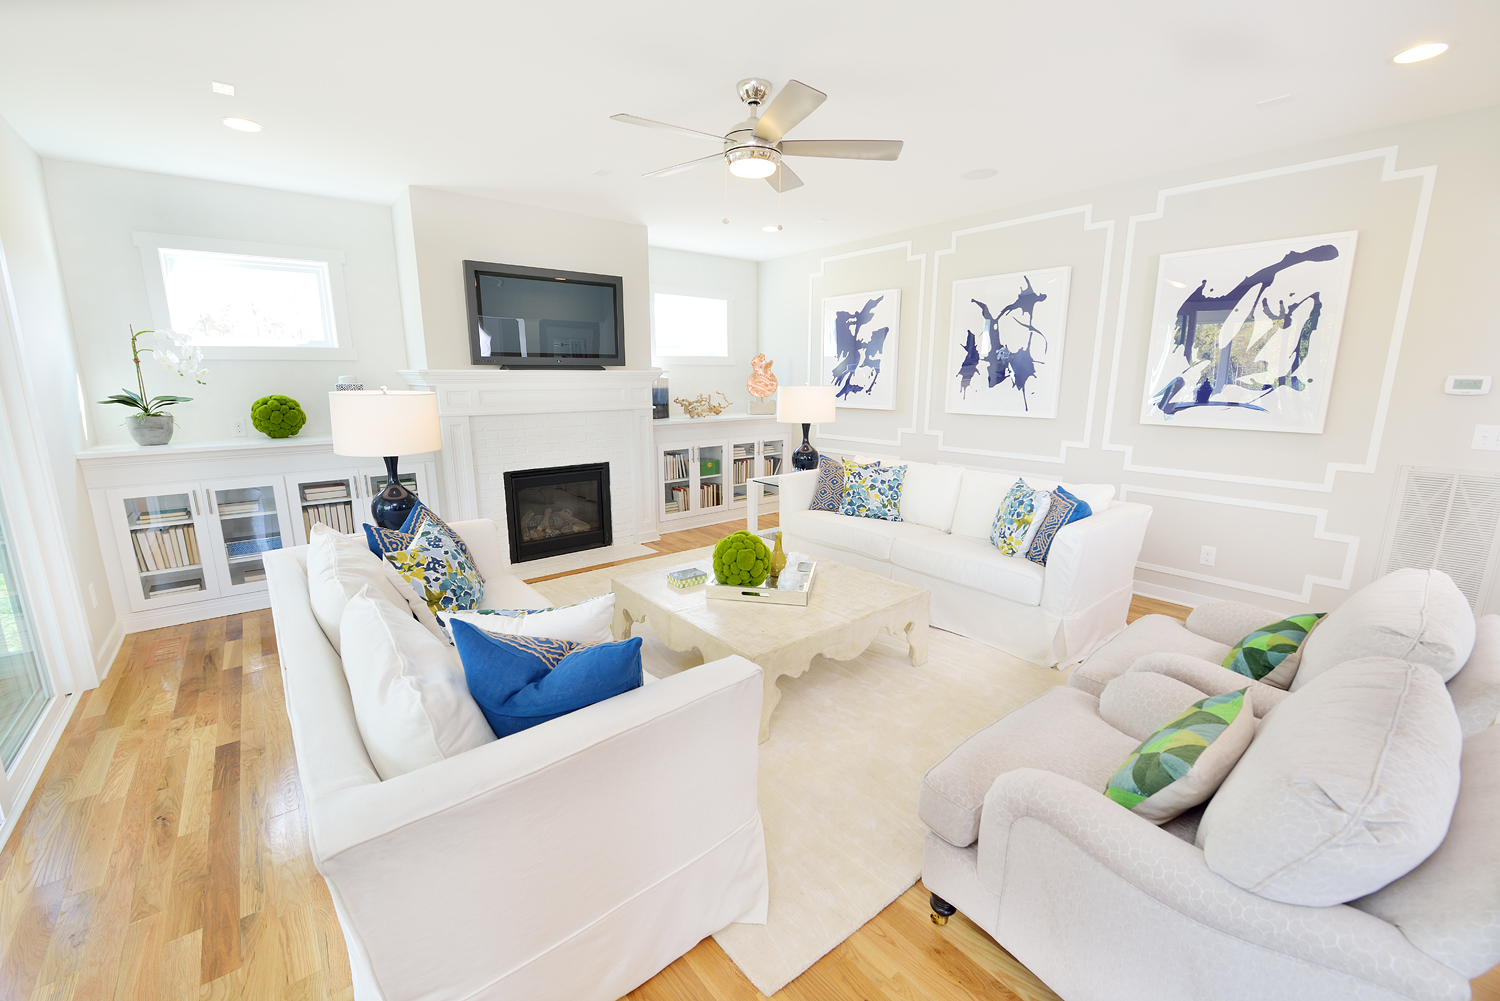 New Home Photo Gallery | Terramor Homes